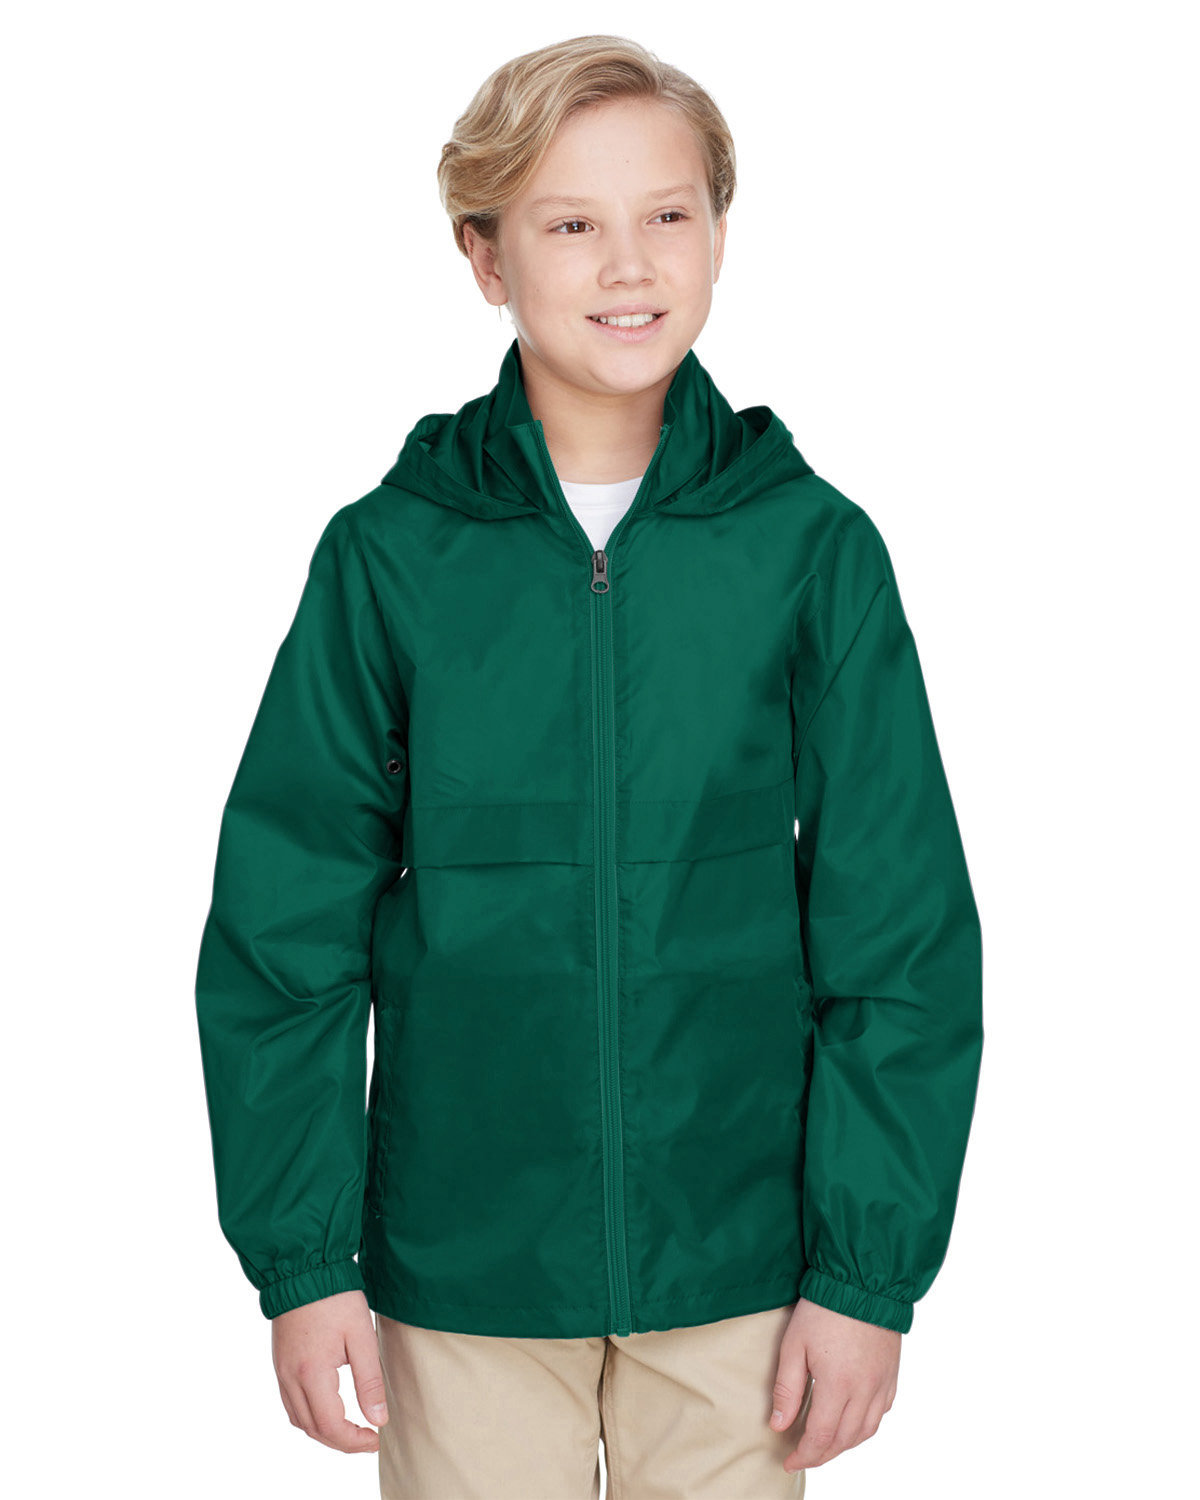 Team 365 Youth Zone Protect Lightweight Jacket SPORT FOREST